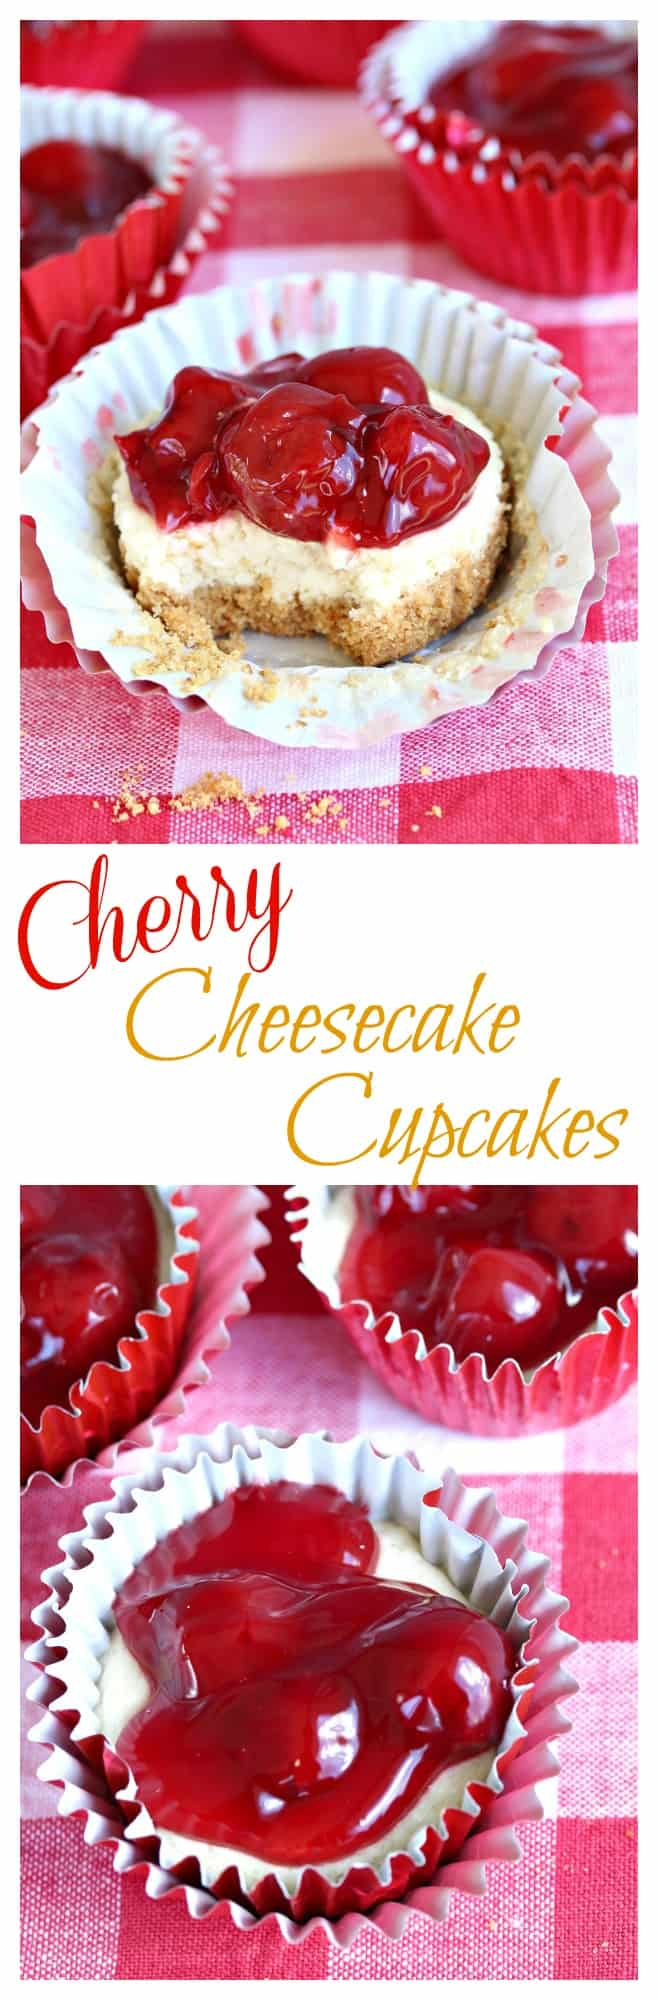 Cherry-Cheesecake-Cupcakes